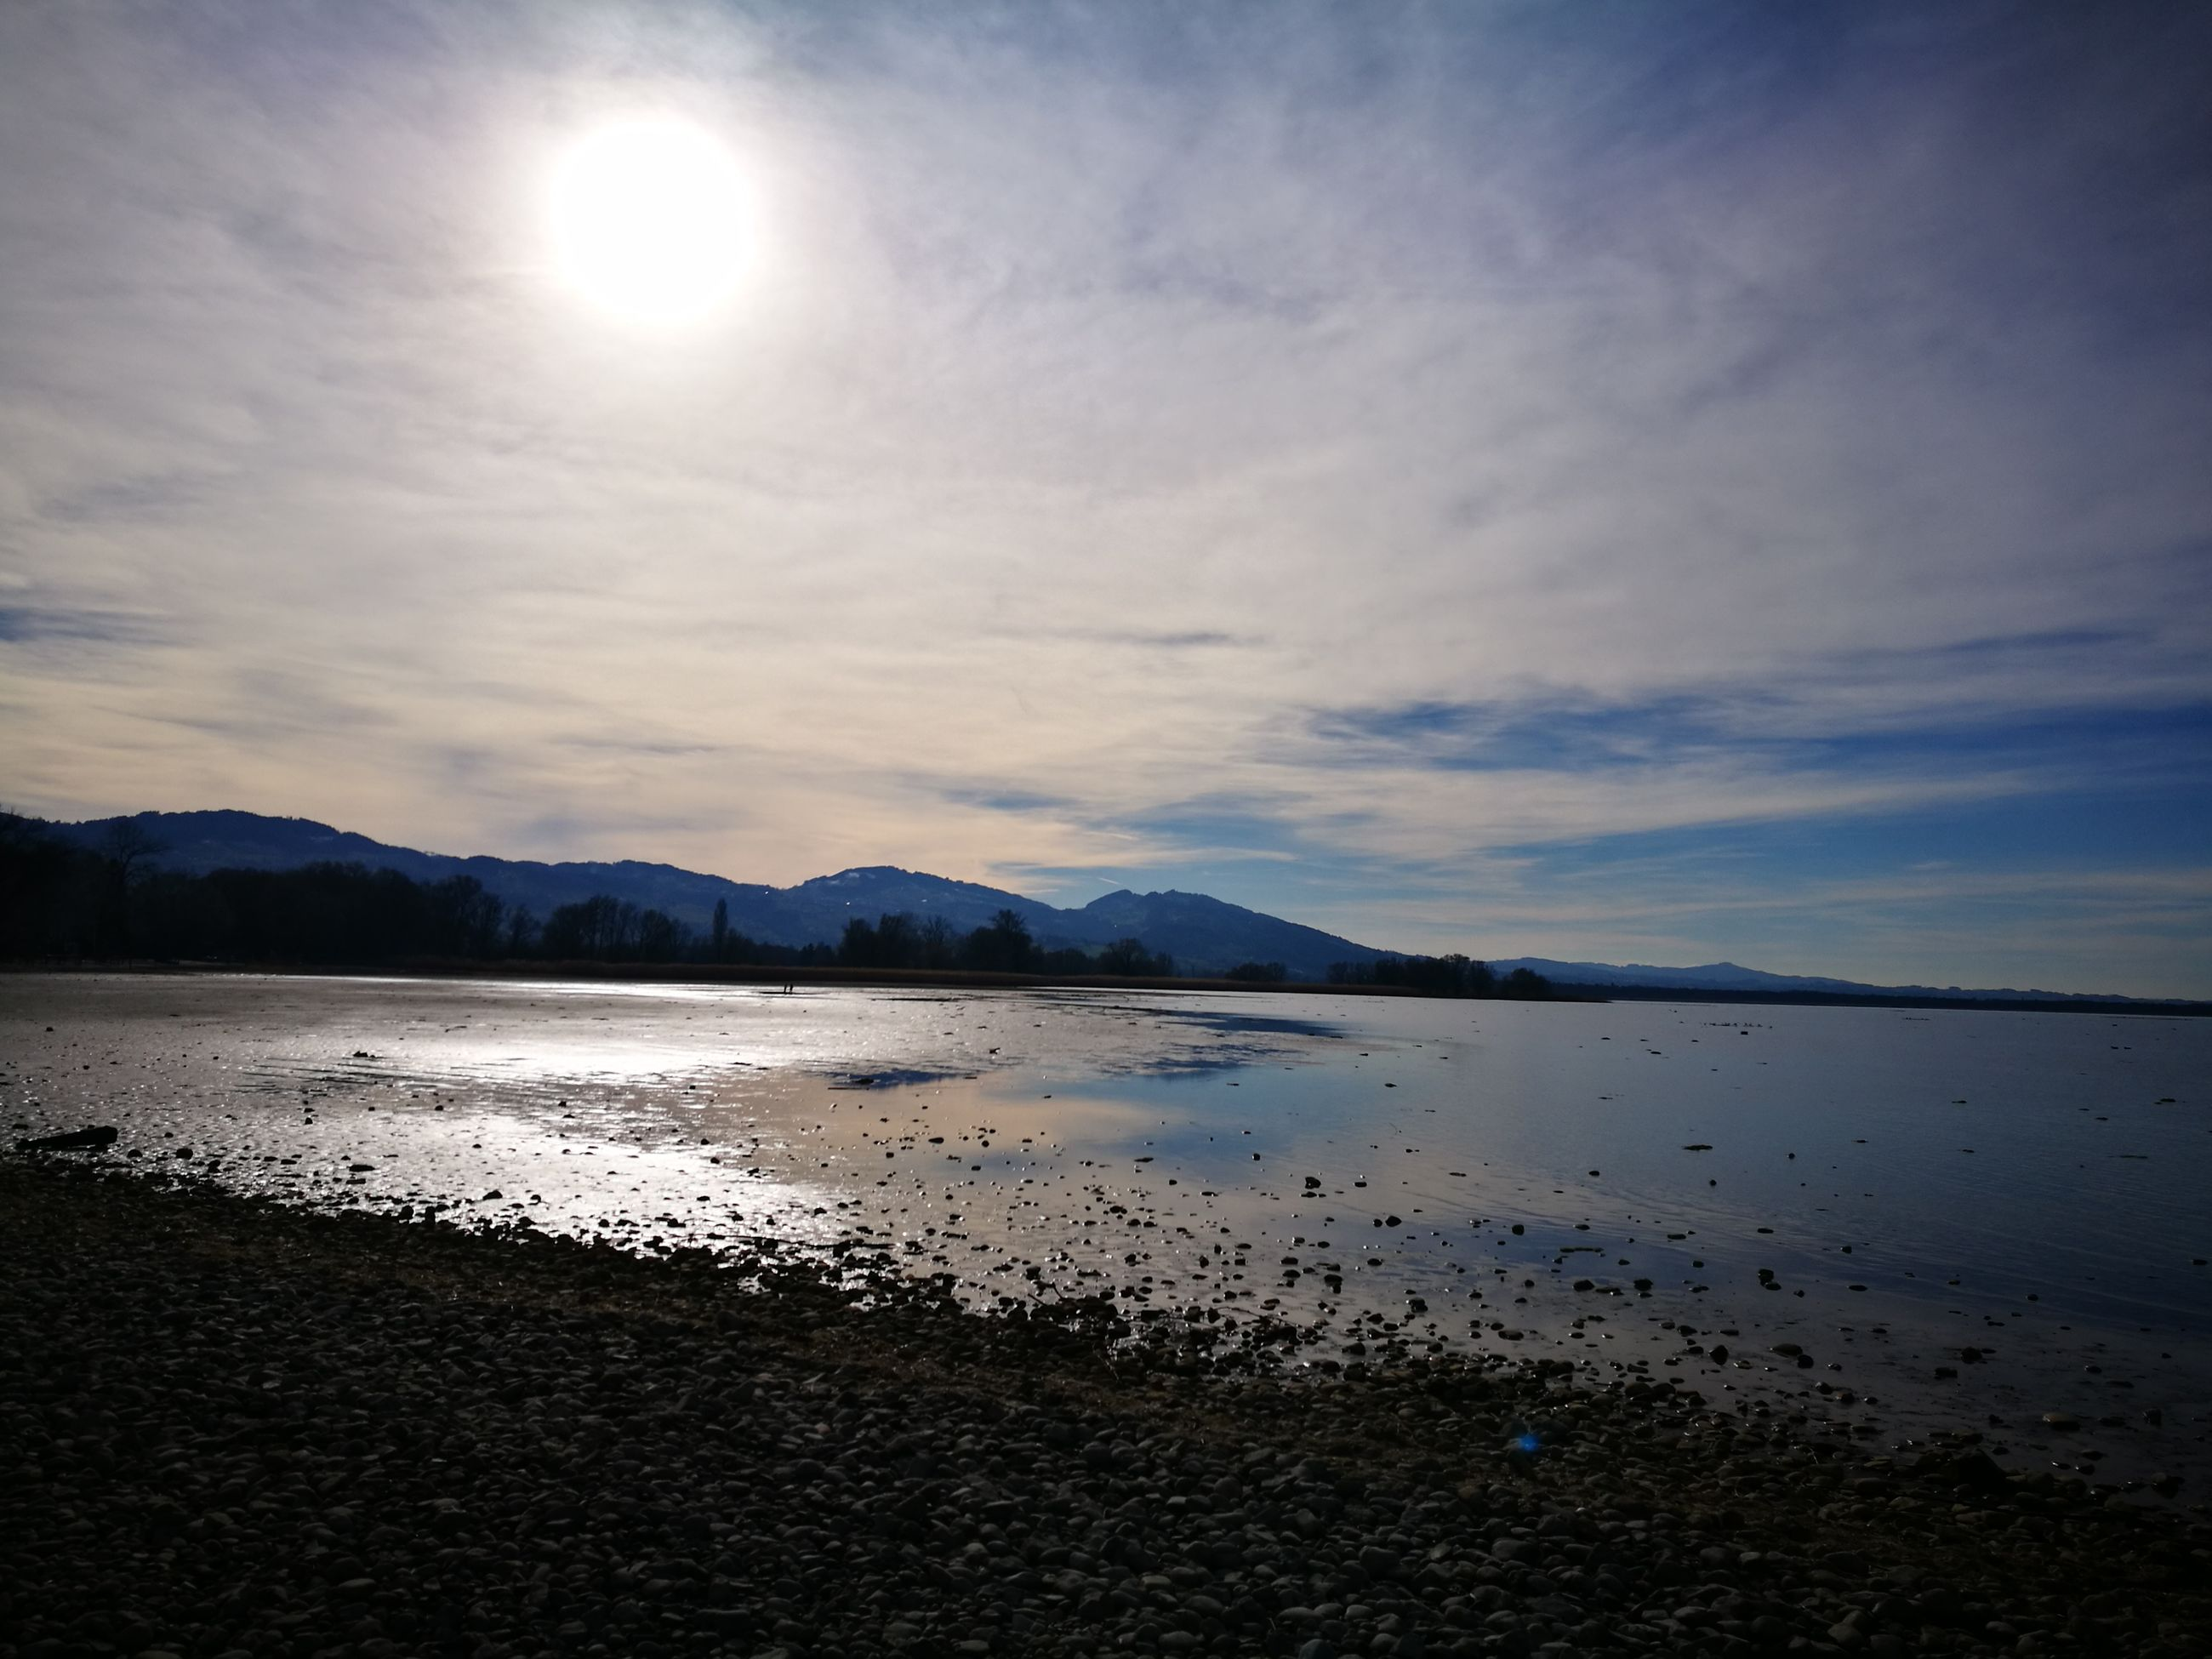 nature, beauty in nature, sea, sky, mountain, outdoors, scenics, no people, water, sunset, cloud - sky, beach, day